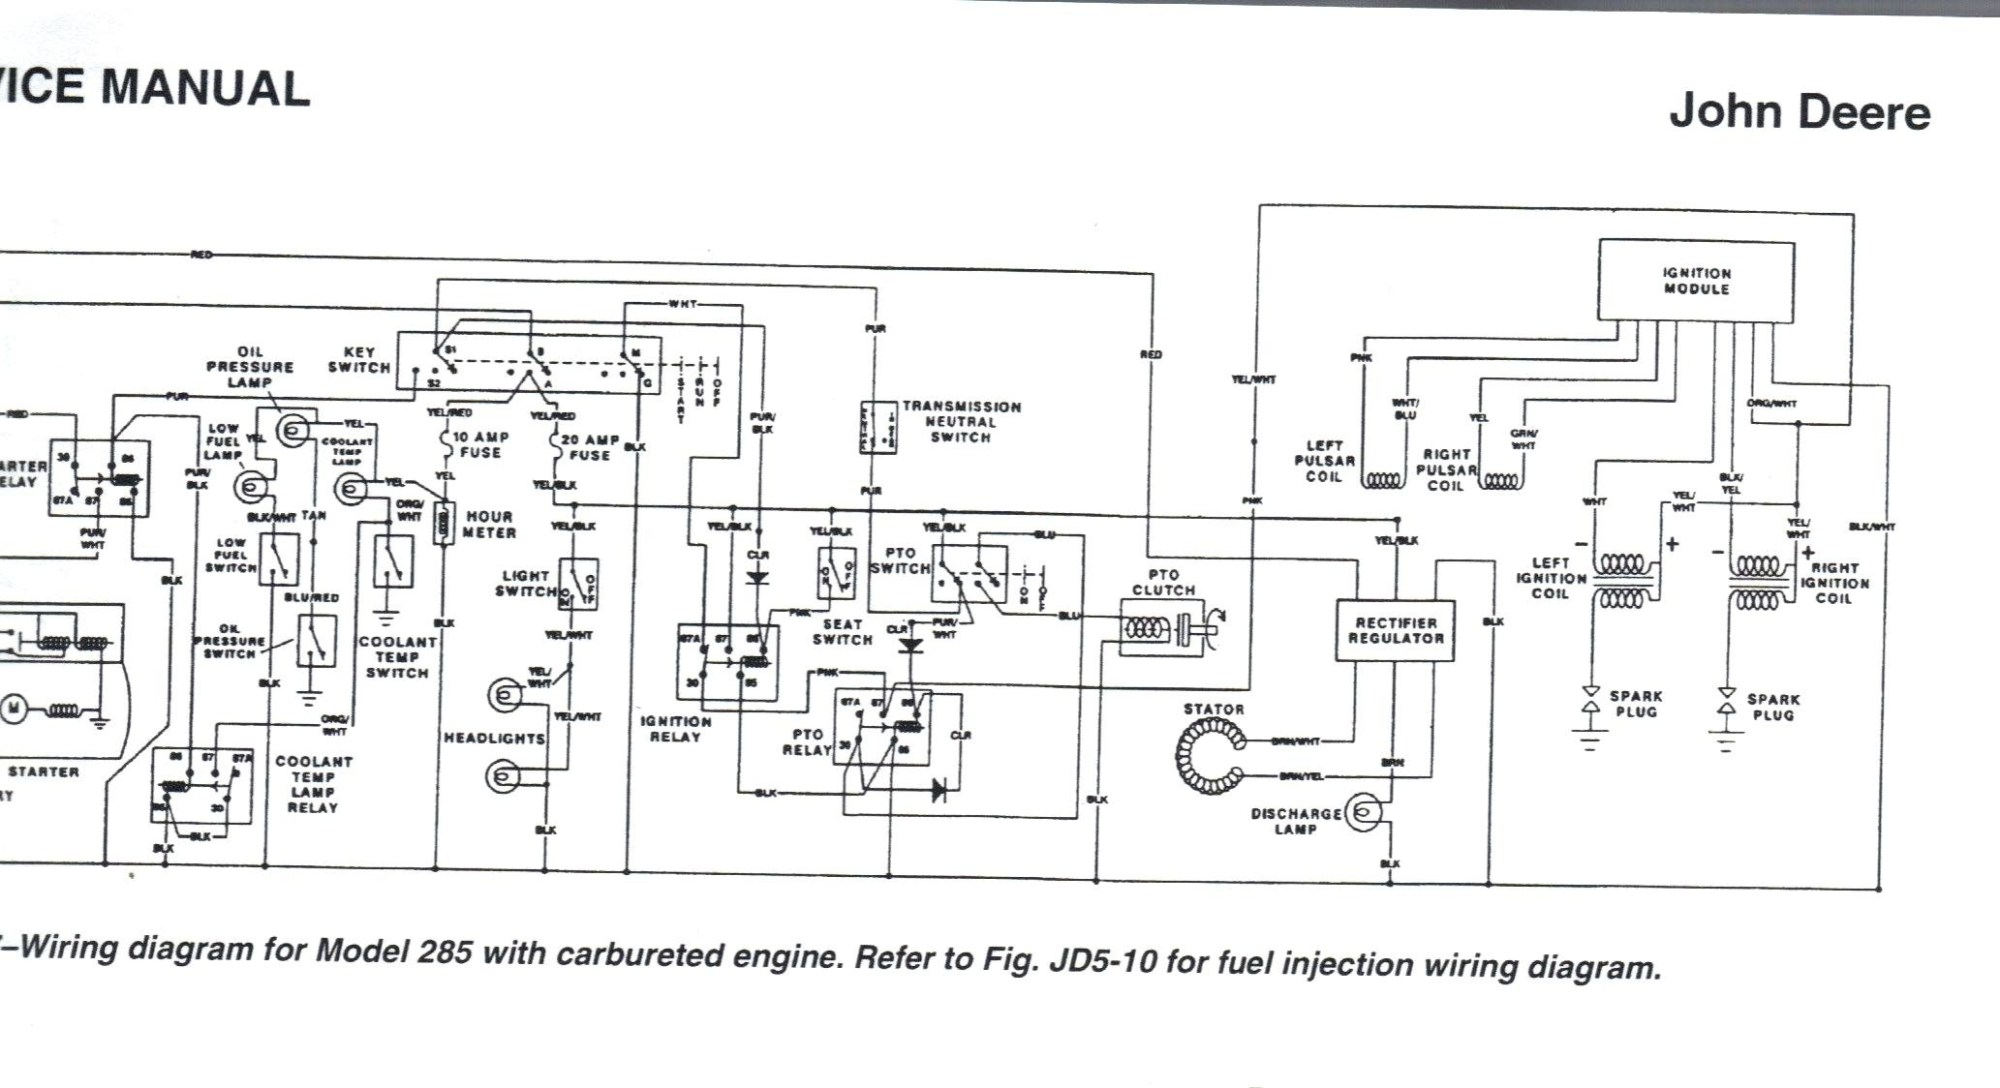 hight resolution of wiring schematic for john deere 445 free download wiring diagrams john deere 445 pto solenoid john deere 445 wiring diagram